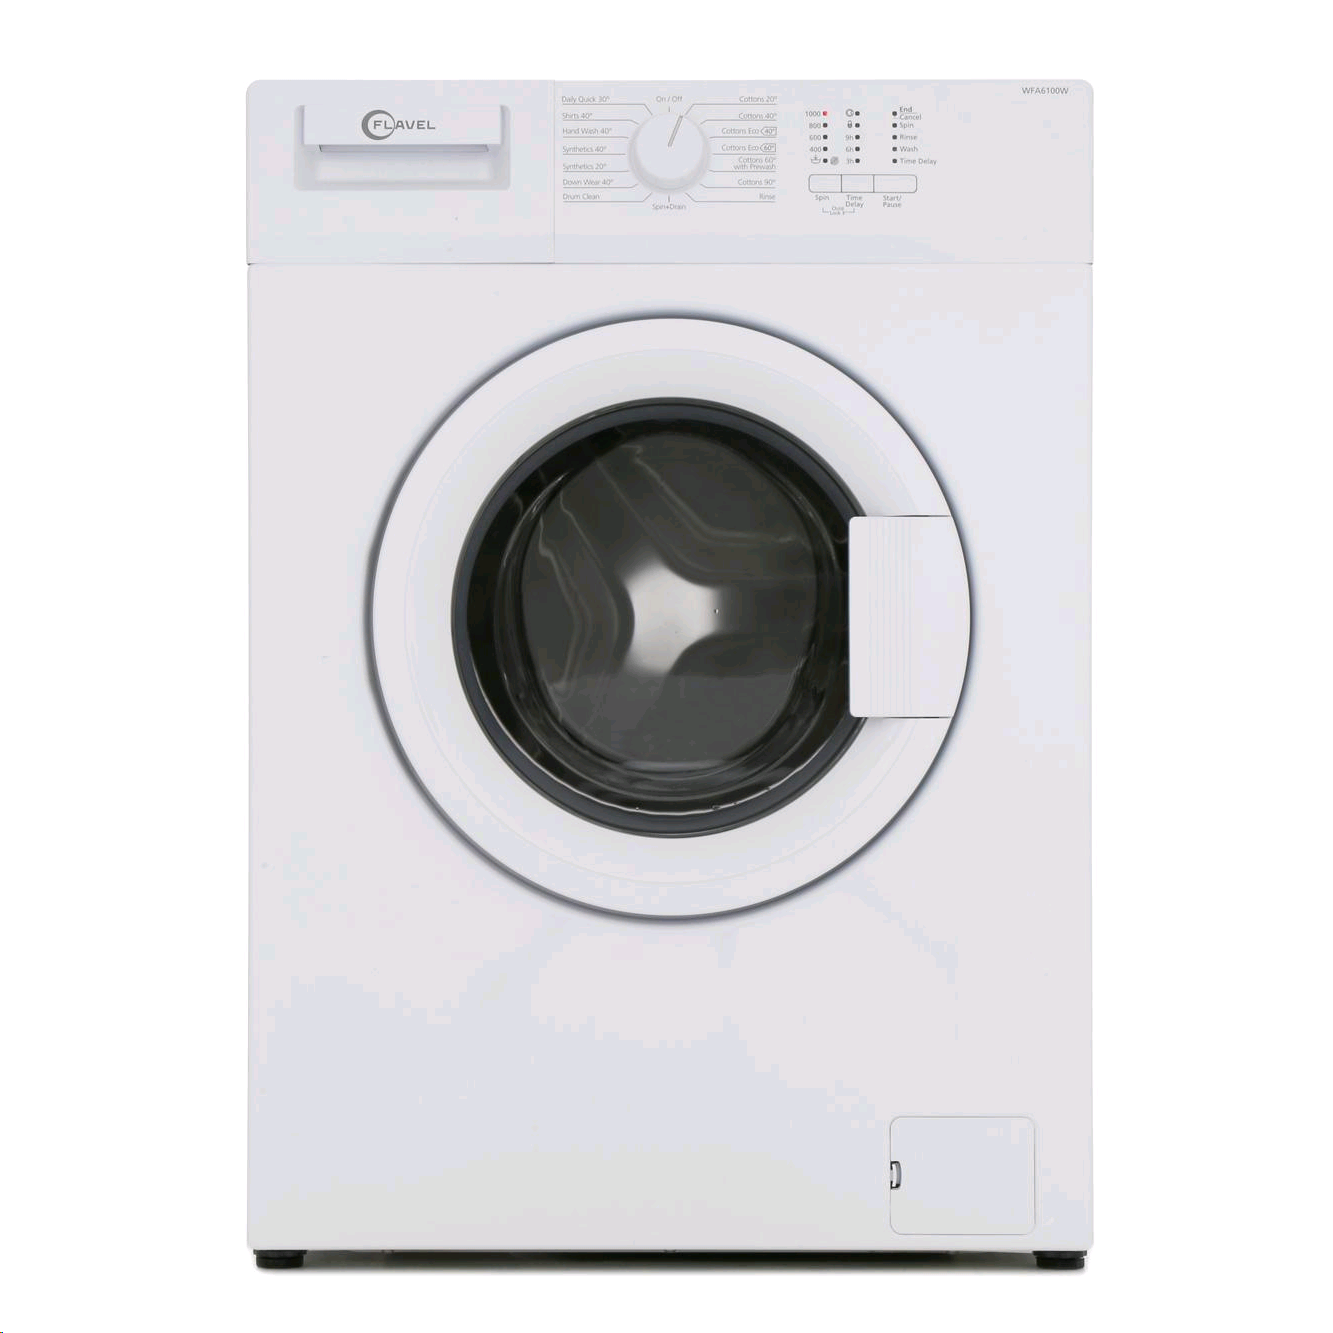 Flavel Washing Machine 1000spin 6KG A+ H850 W600 D450 28min Full wash LED Display